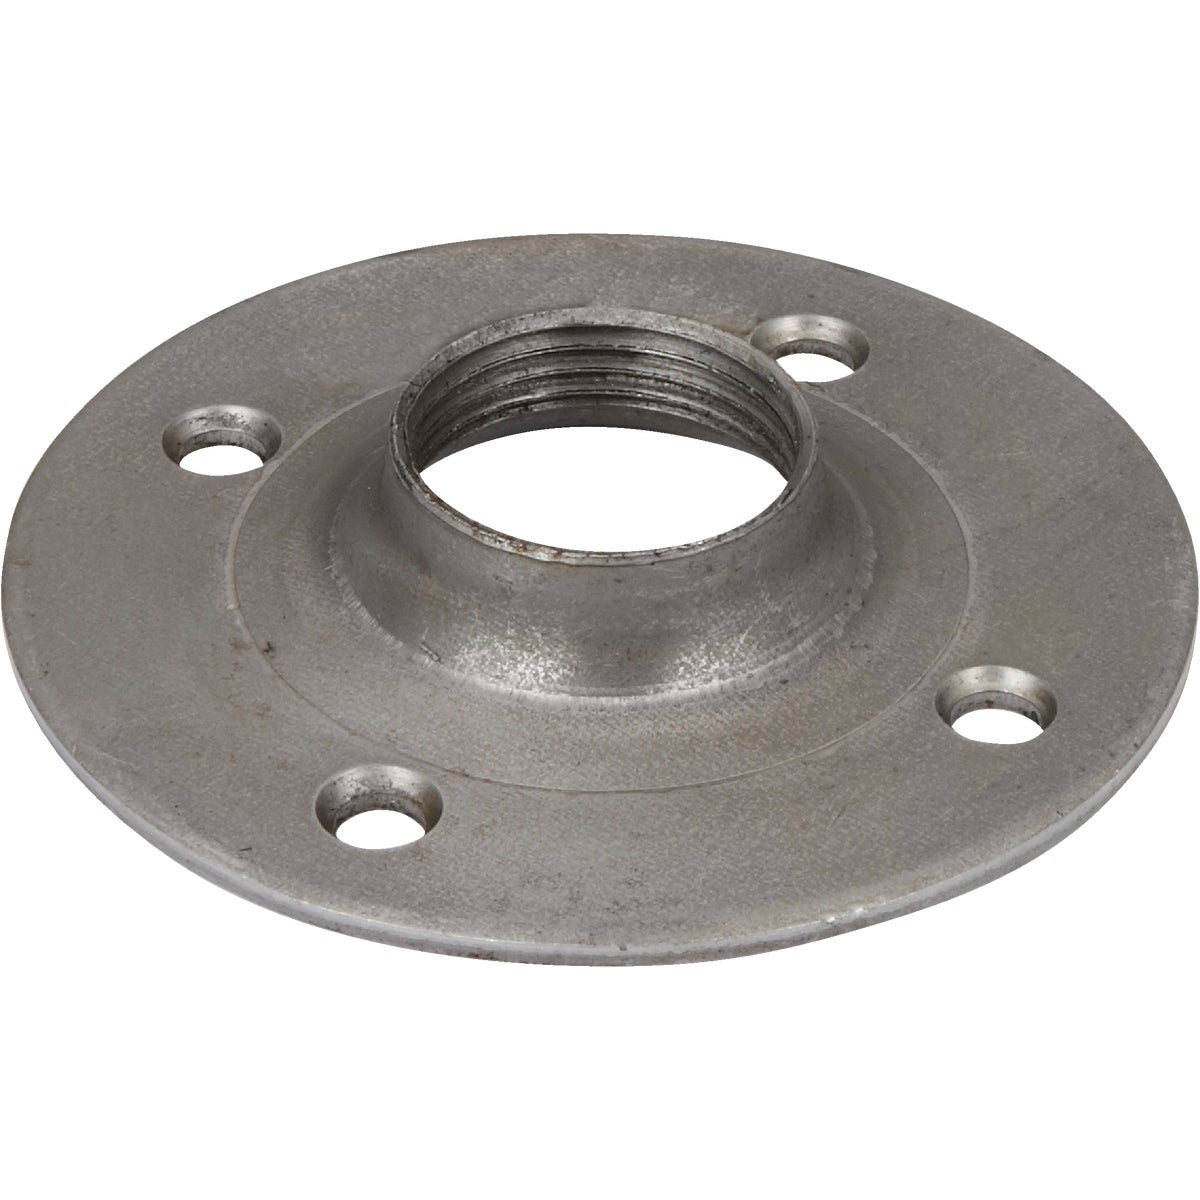 "1"" STEEL FLOOR FLANGE -  by Western Reserve Mfg"